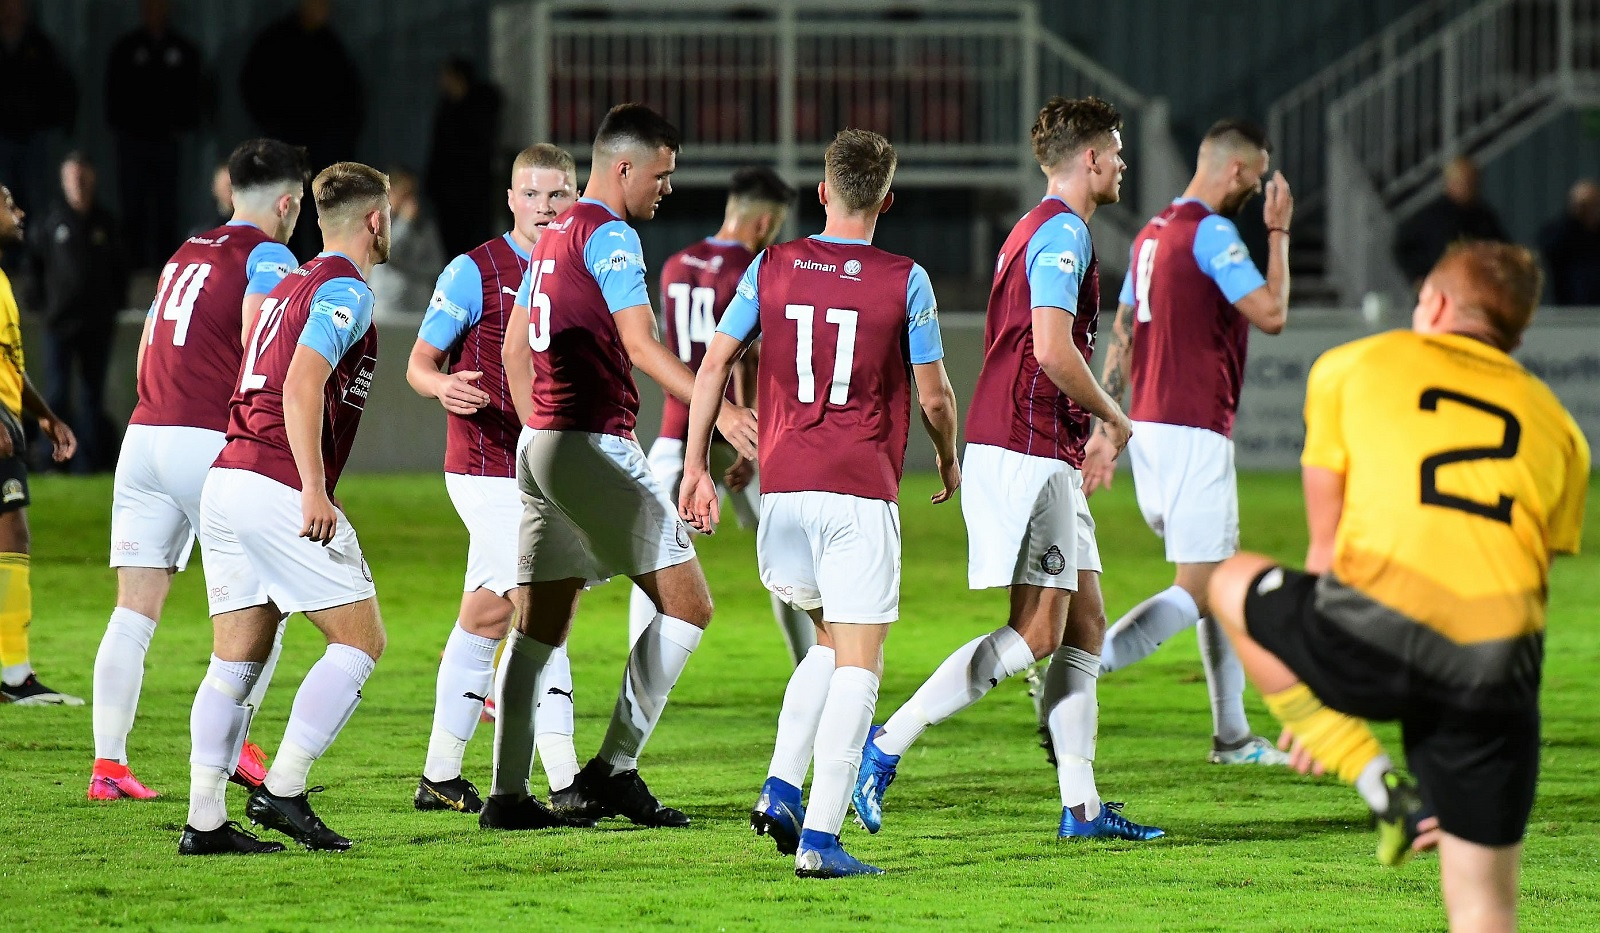 South Shields 3-1 West Auckand Town